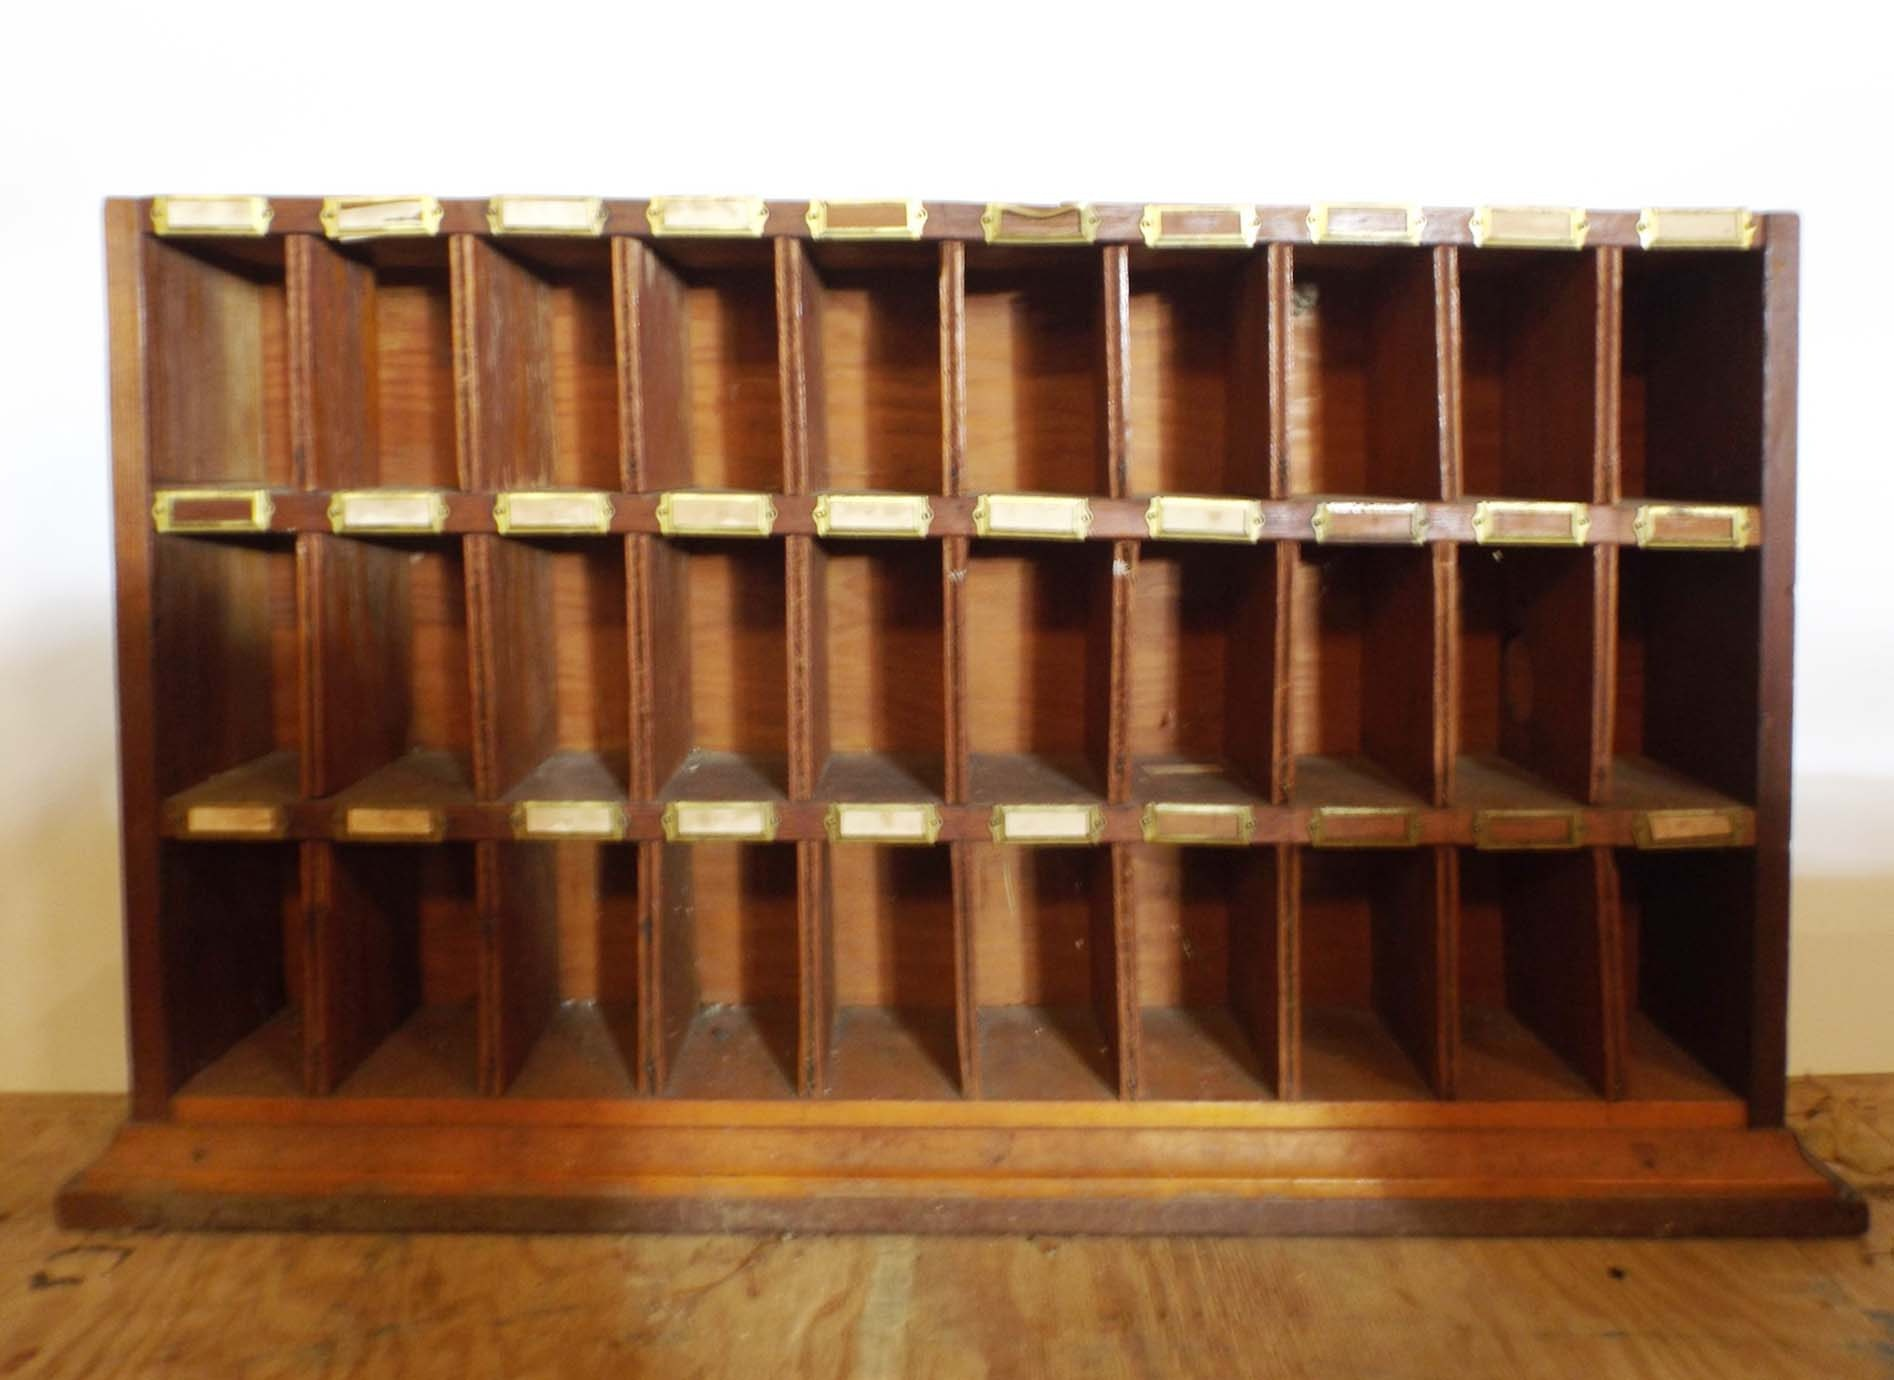 Unique Vintage Wooden Post Office Mail Sorter Cabinet : EBTH ZI99